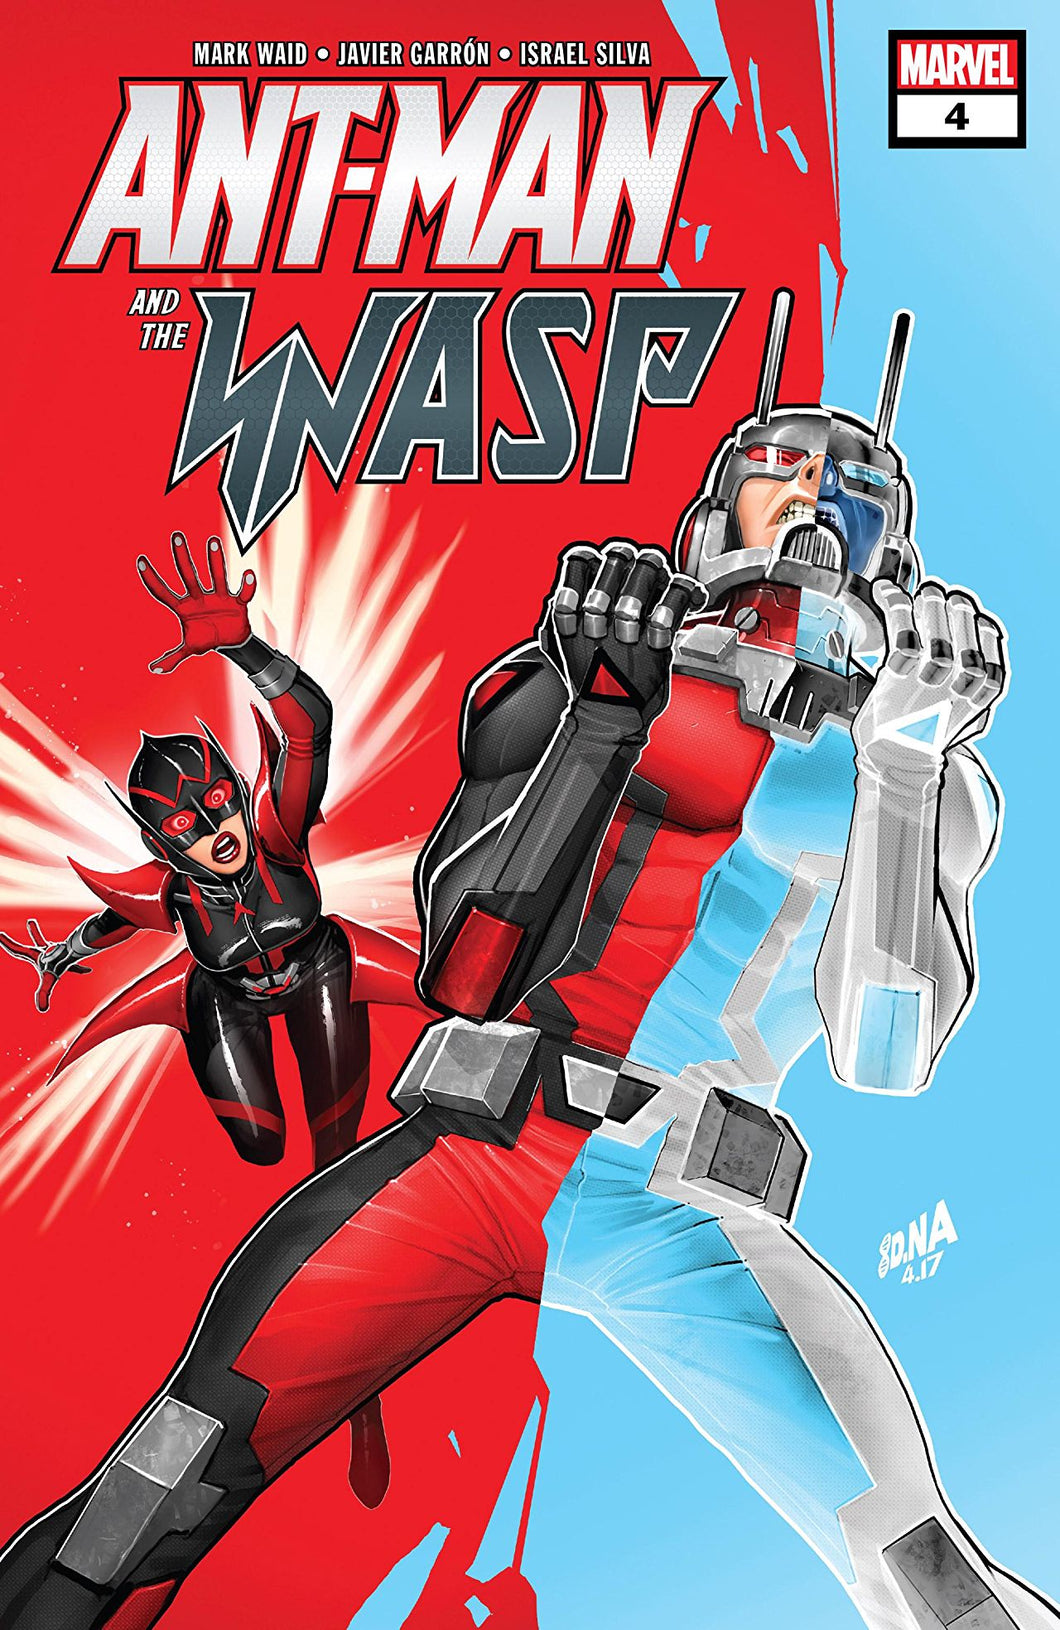 ANT-MAN AND THE WASP #4 (OF 5) (08/01/2018)